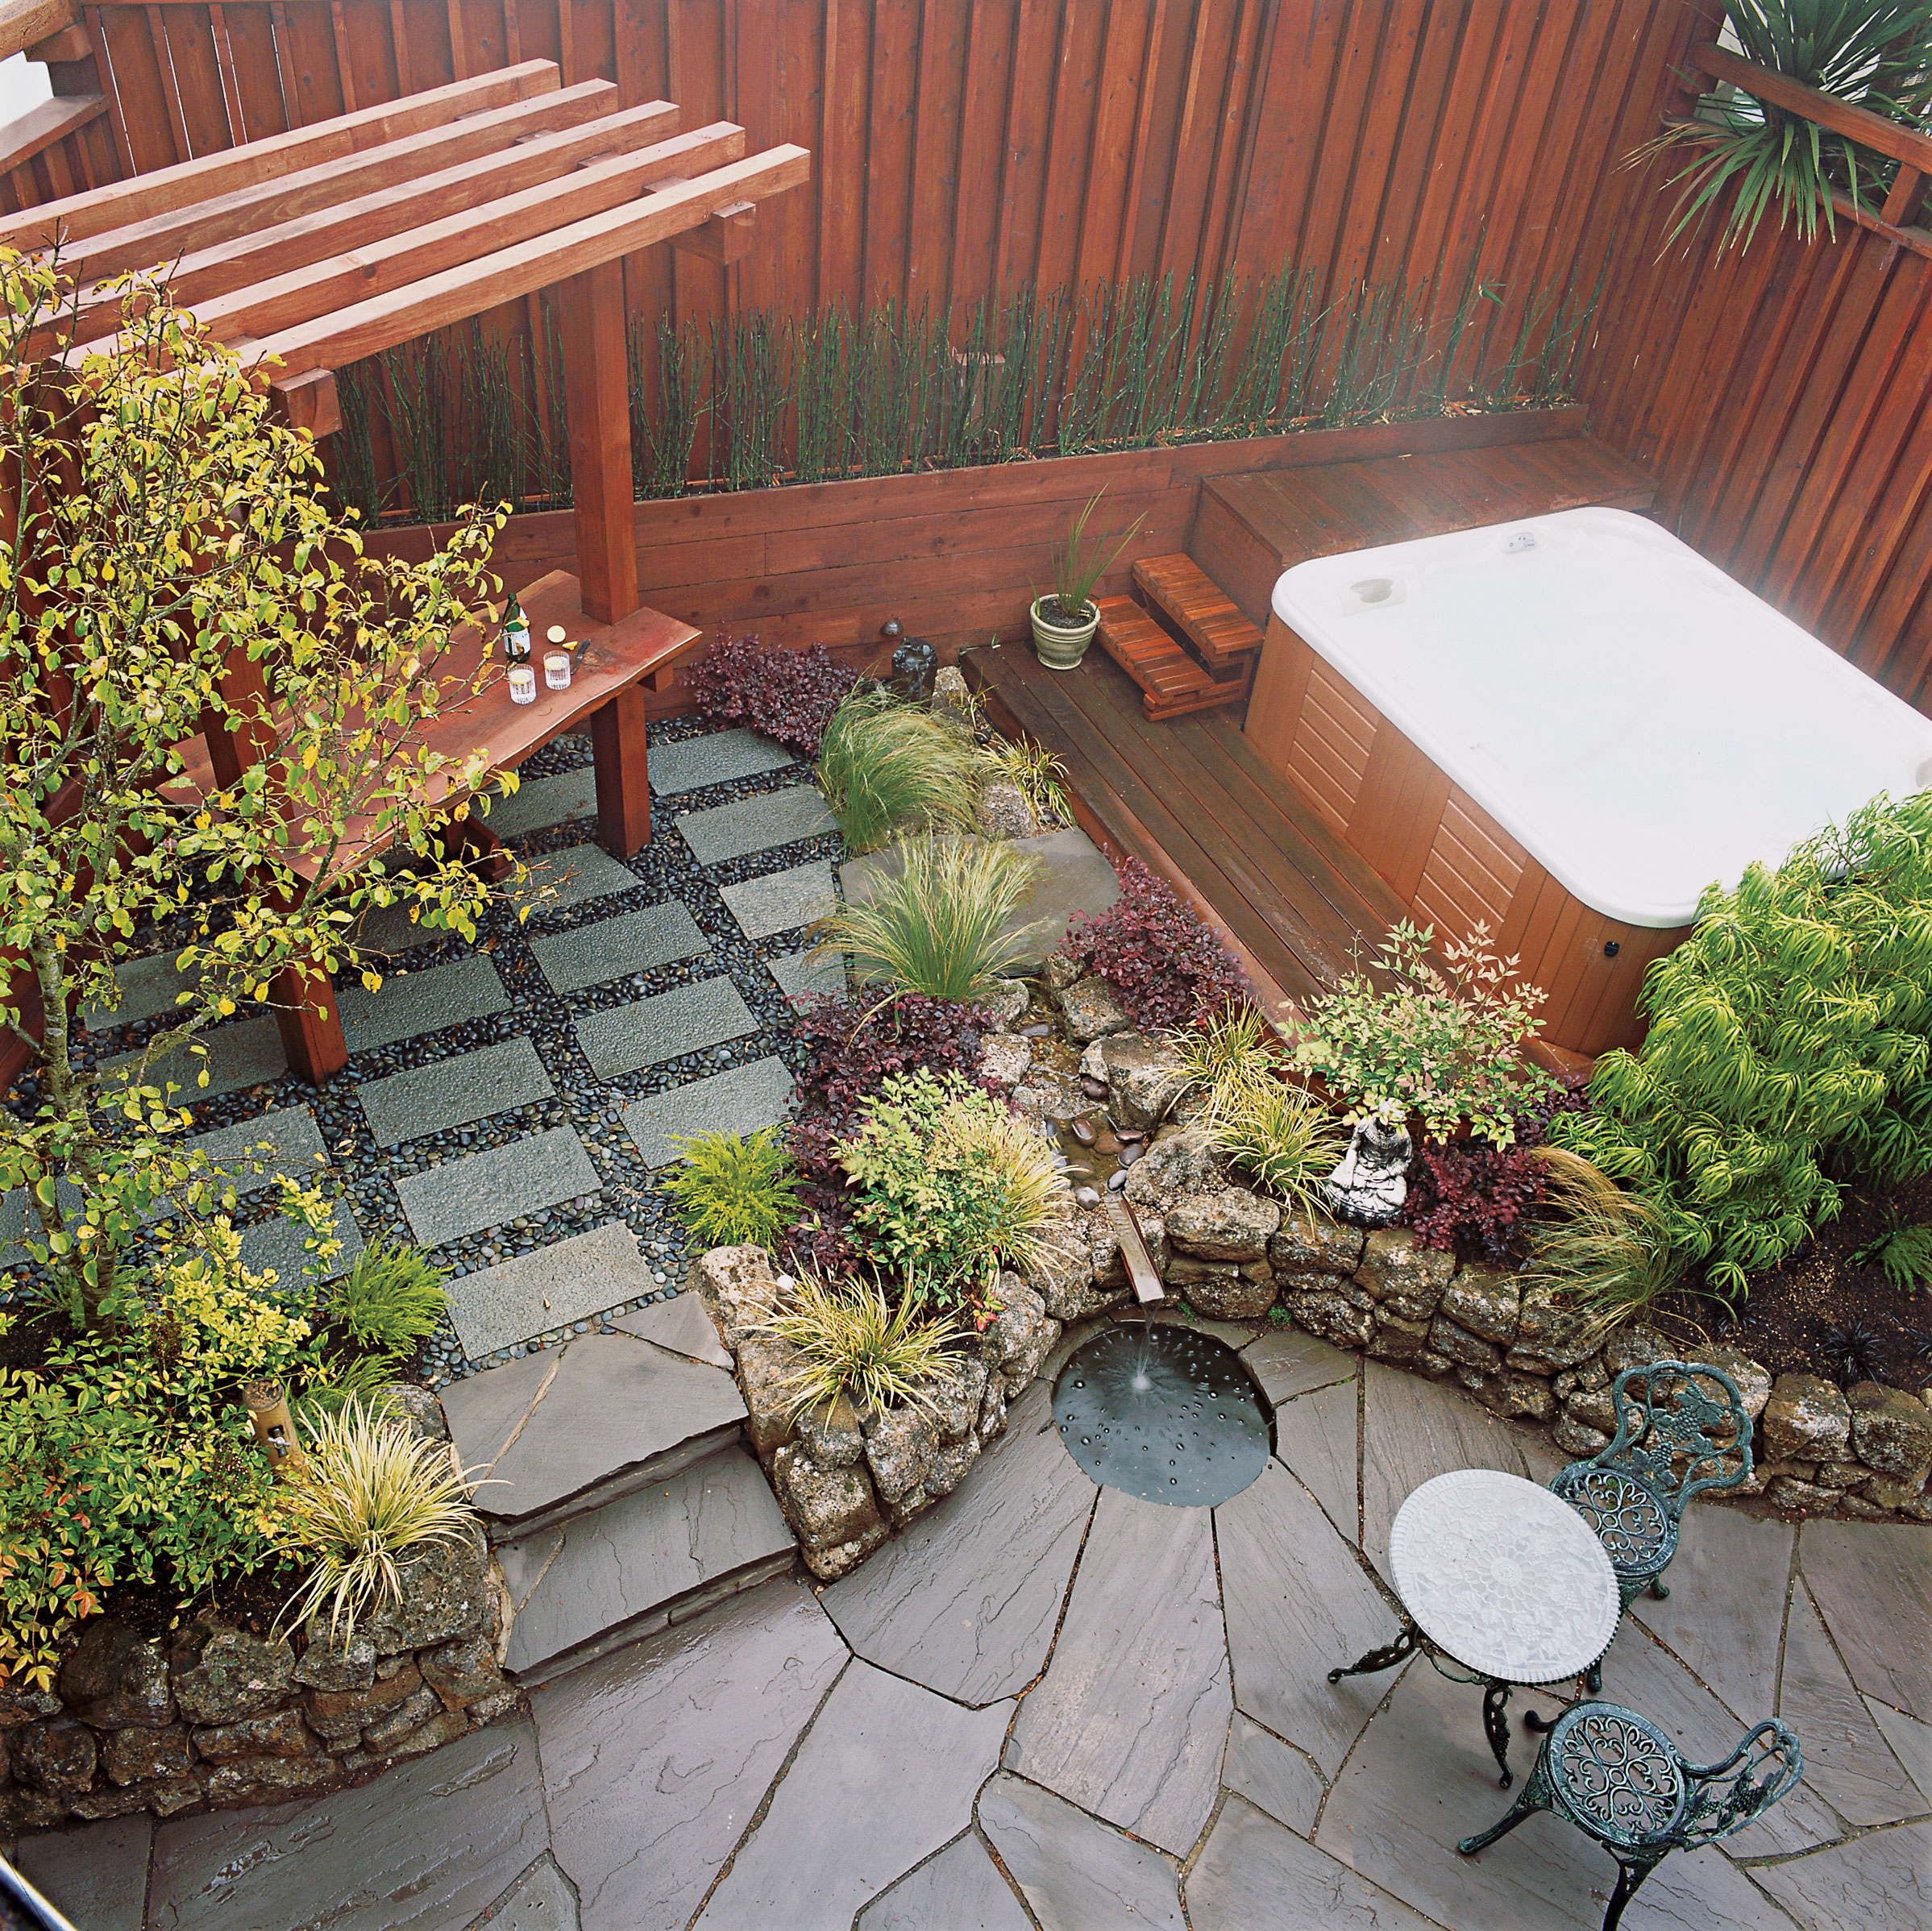 Small garden secrets - Sunset Magazine on Landscape Garden Designs For Small Gardens id=91410